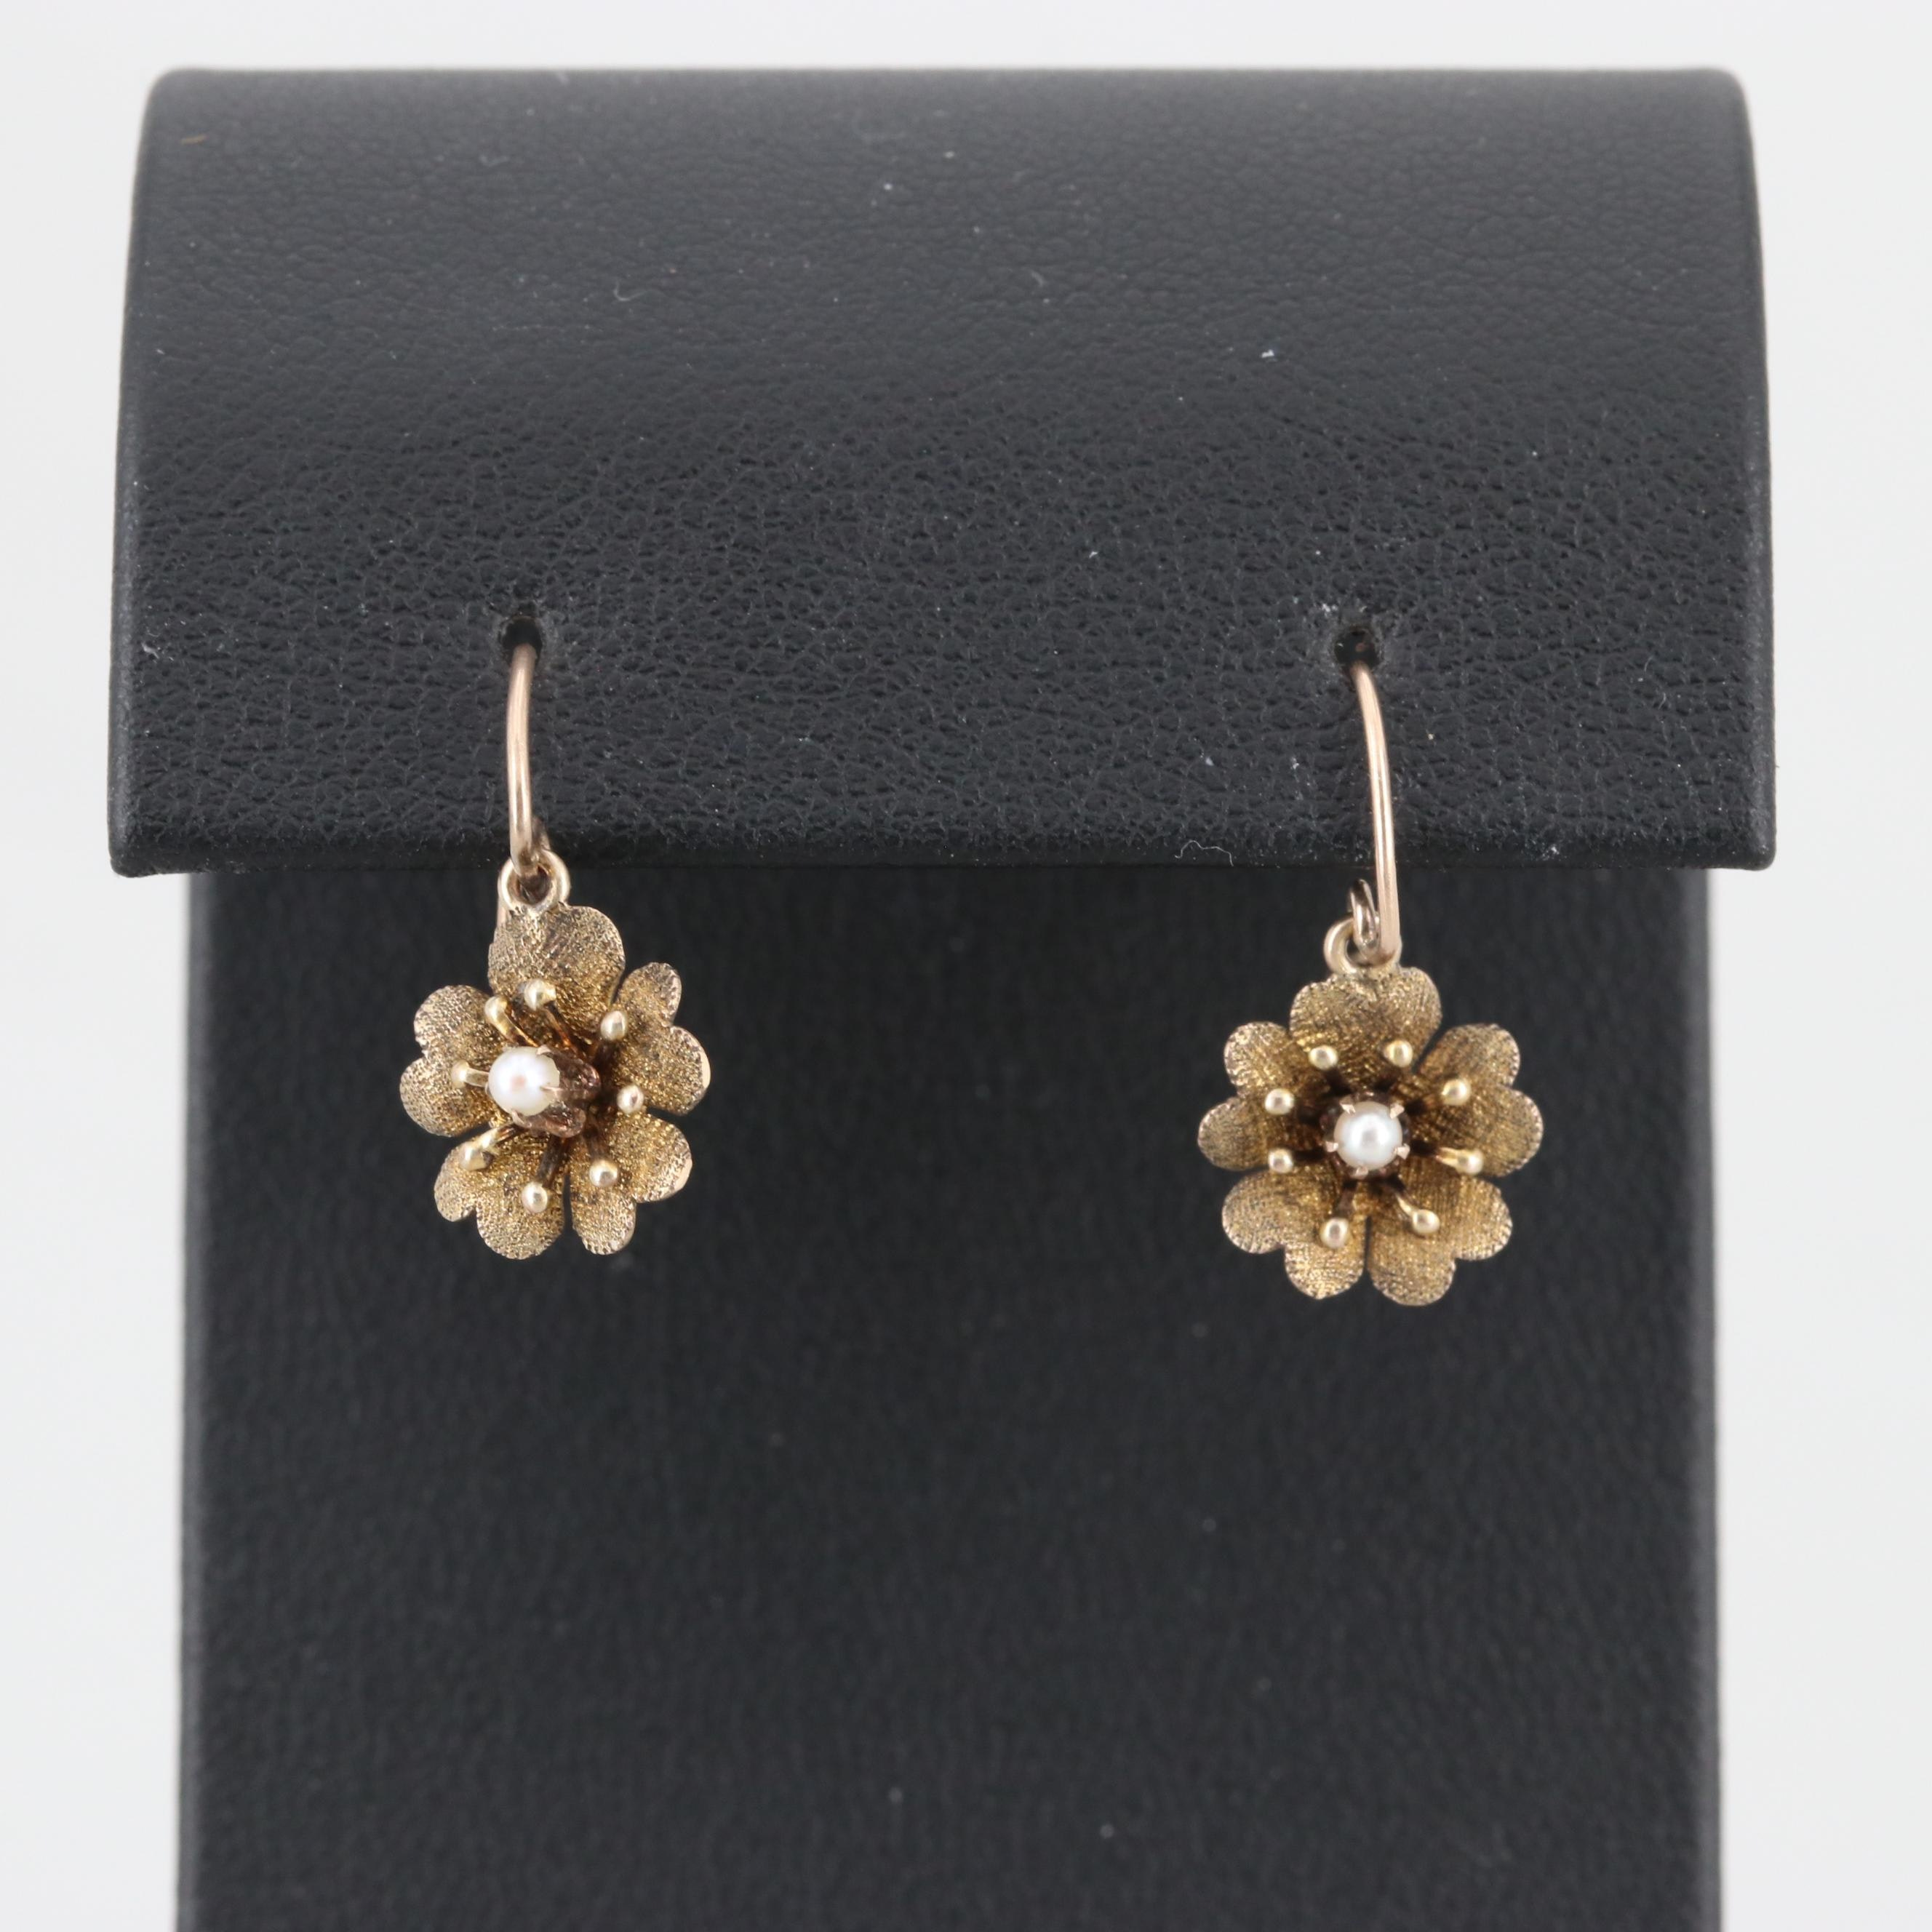 Circa 1900 8K Yellow Gold Seed Pearl Earrings